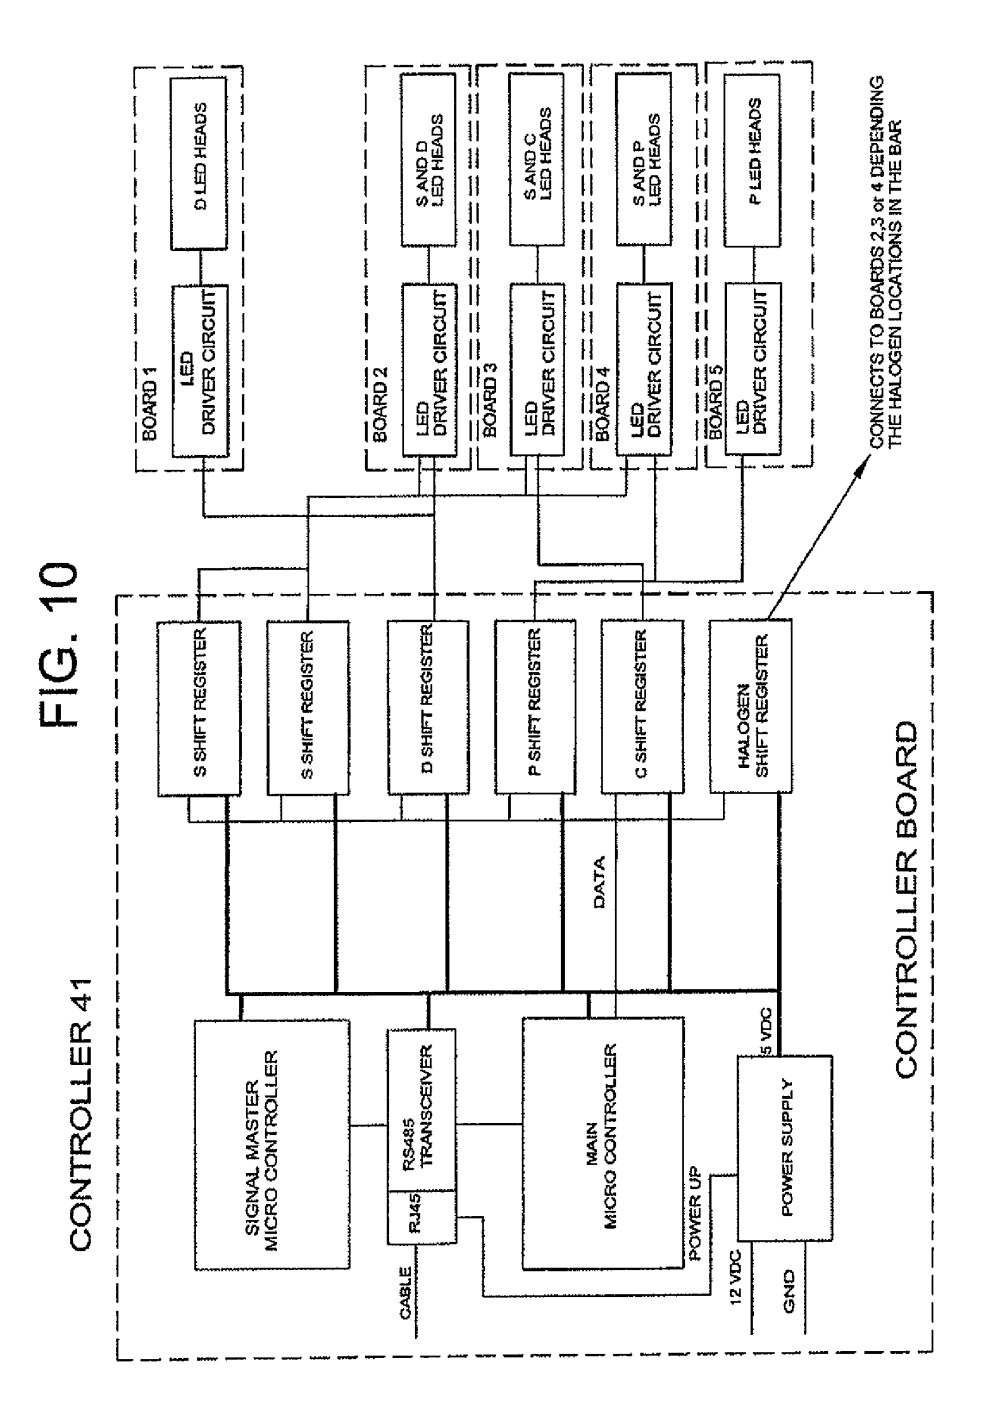 Federal Pa300 Wiring Diagram - wiring product diagram ... on